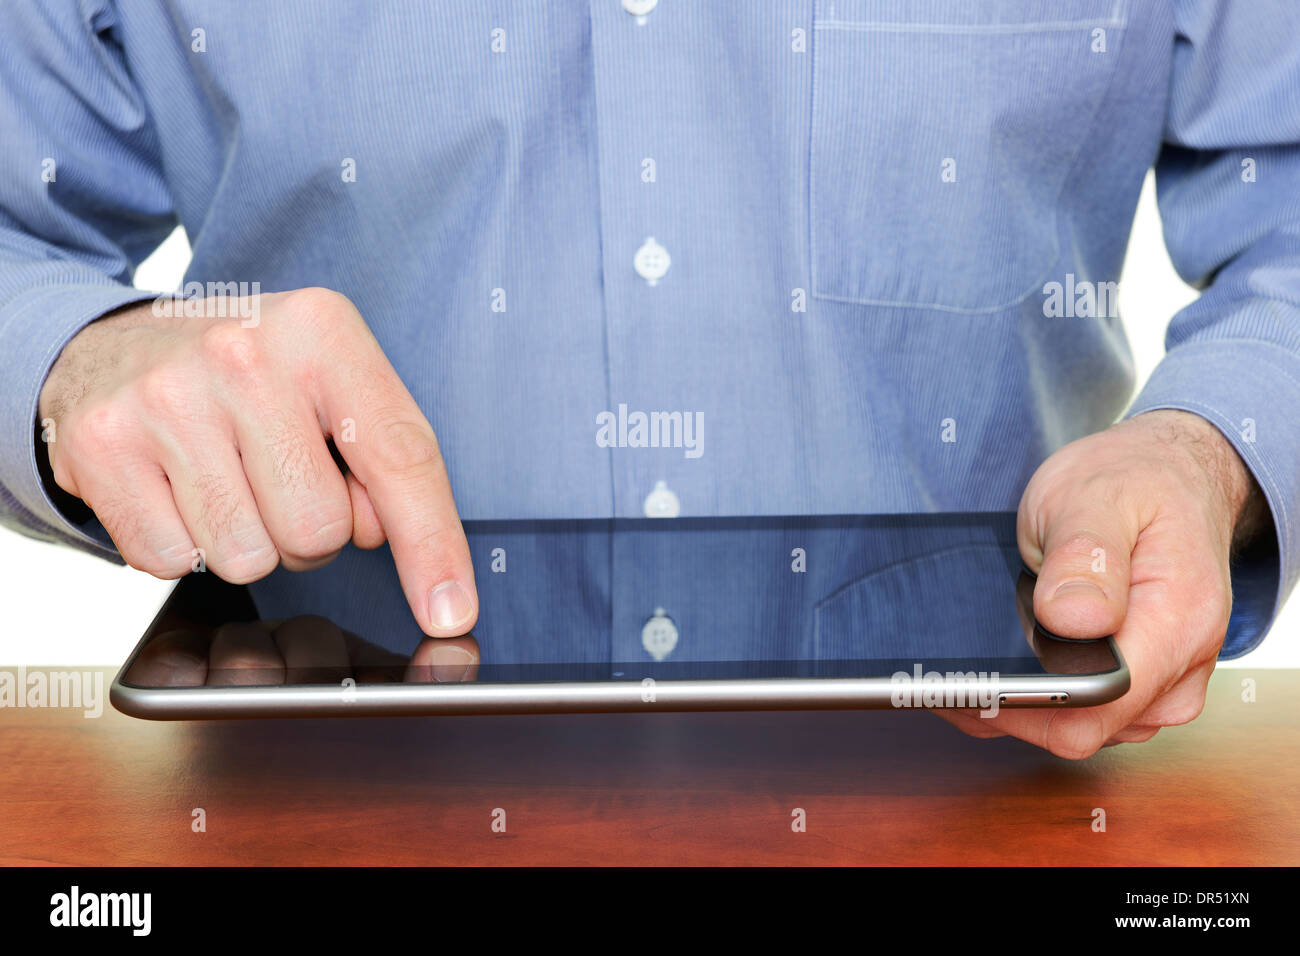 Man Using a Tablet Computer, Close Up. - Stock Image